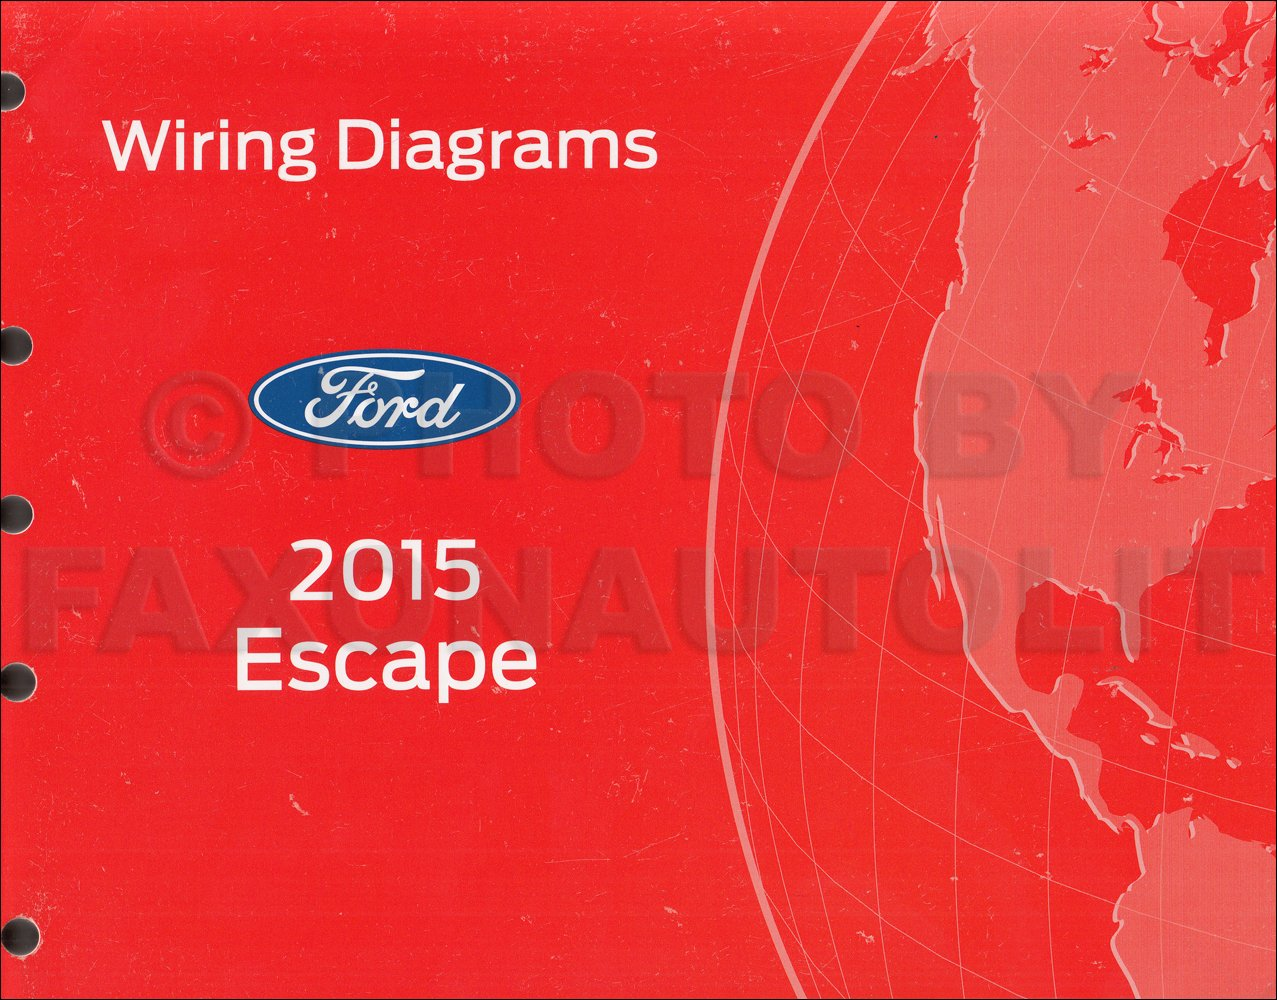 2015 Ford Escape Wiring Diagram - Center Wiring Diagram learned-external -  learned-external.iosonointersex.it | 2015 Ford Escape Wiring Cdc35 |  | iosonointersex.it